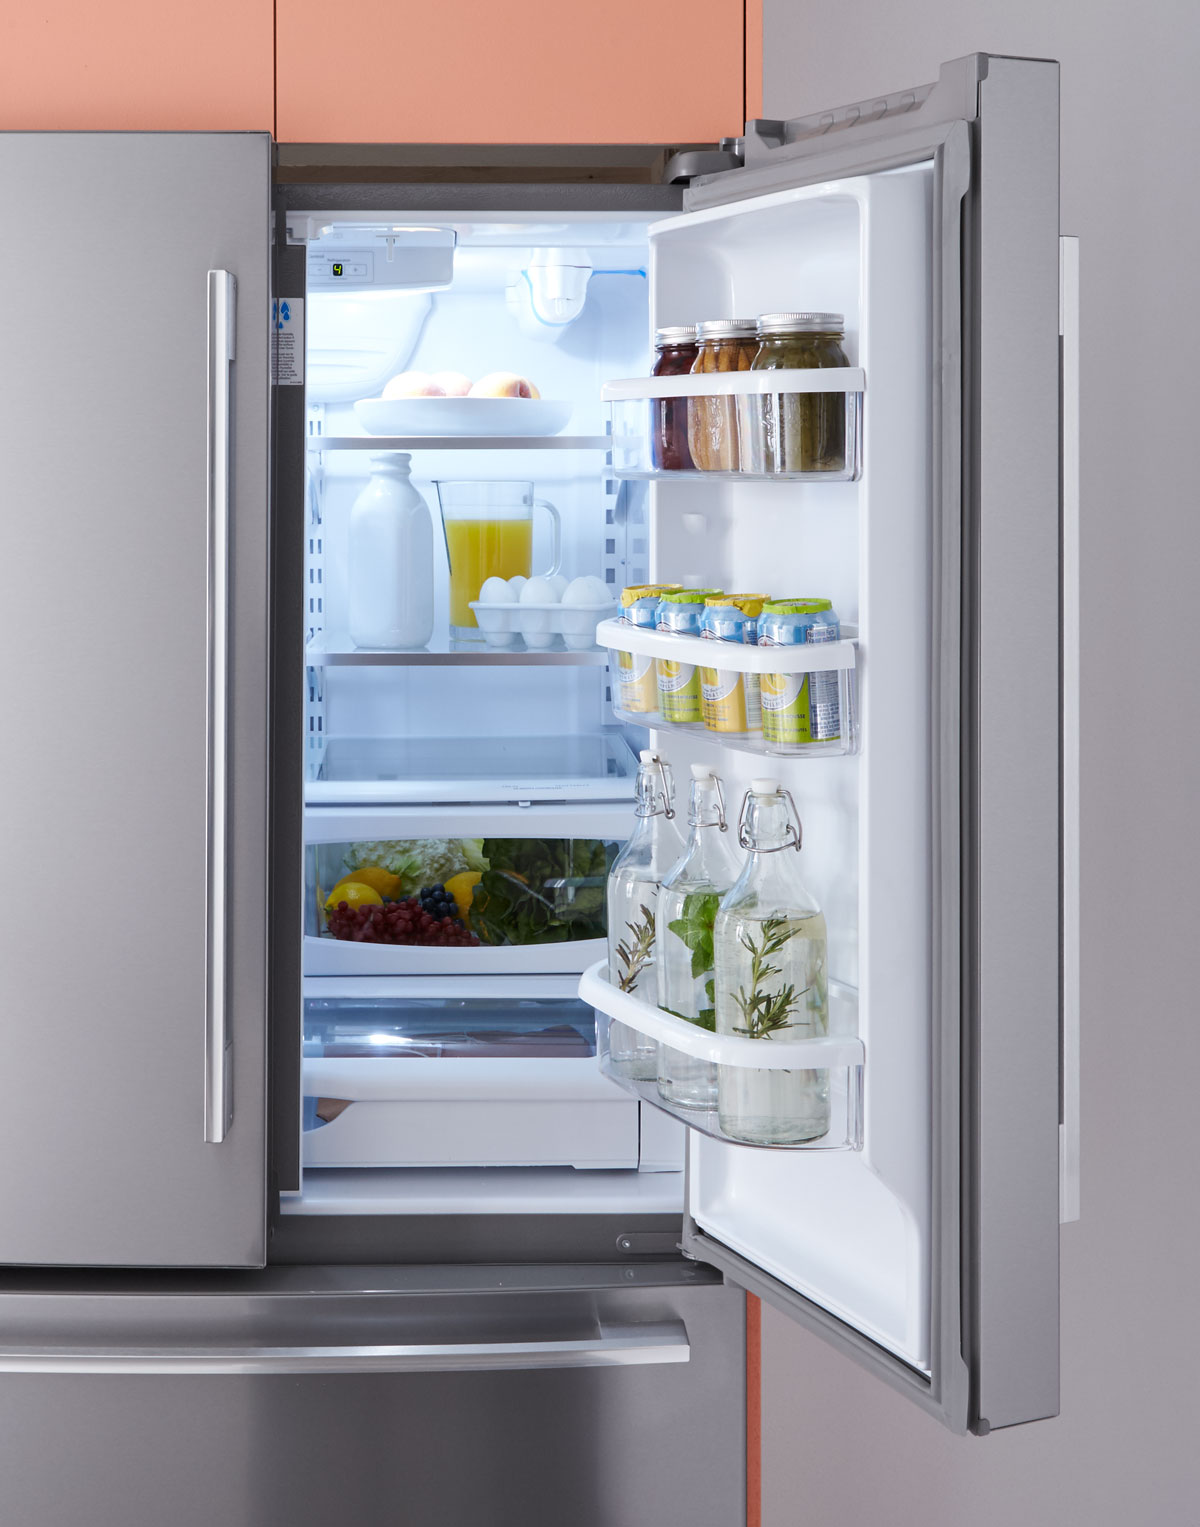 modern kitchen fridge with French doors by Whirlpool